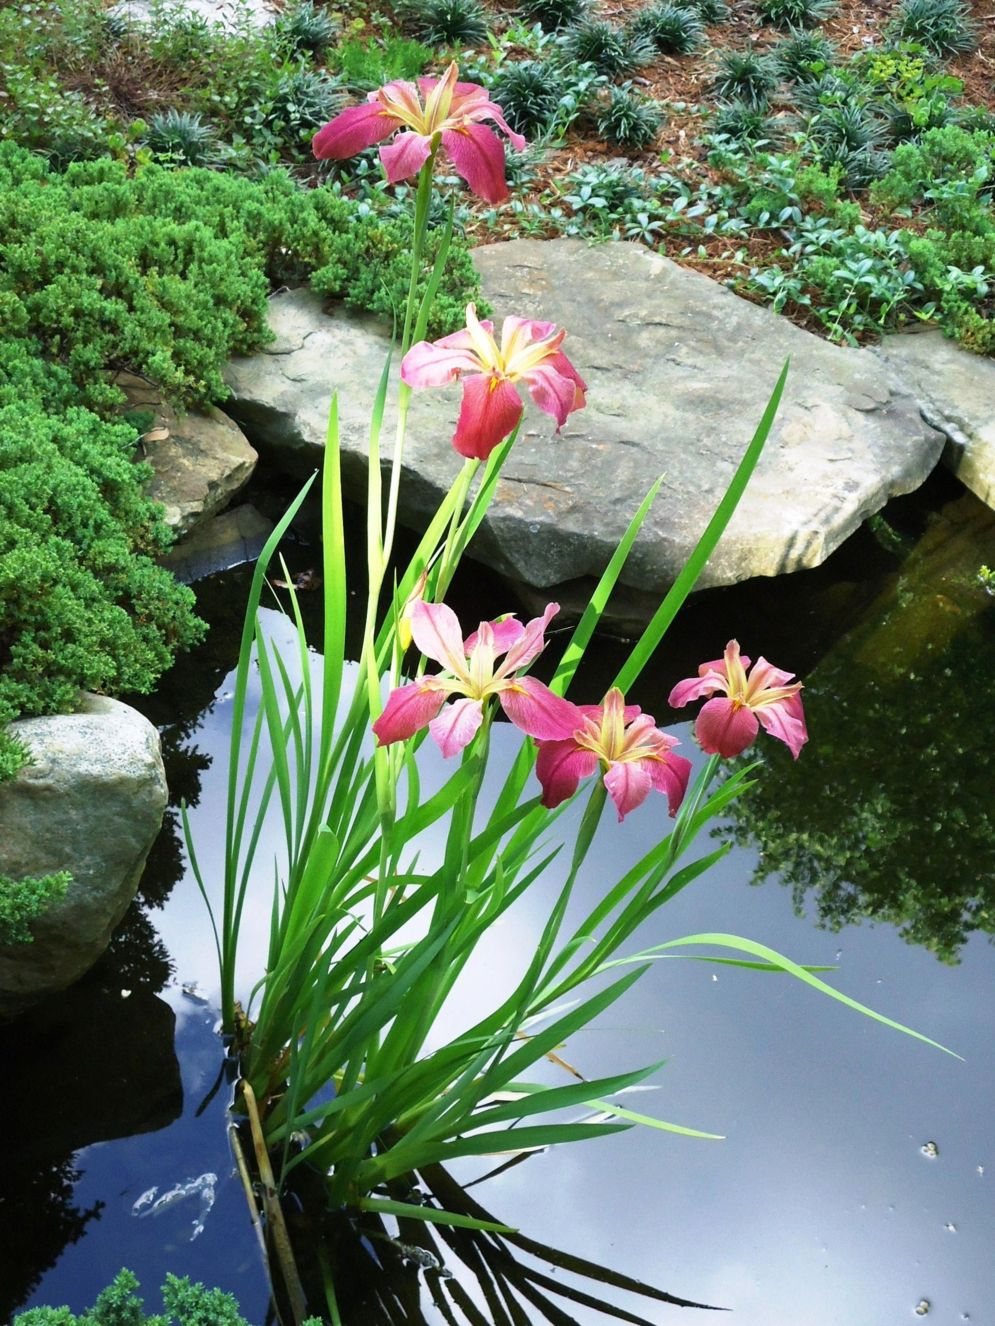 Water garden ideas for more natural backyard feeling with beautiful aquatic plants and ponds Image 29